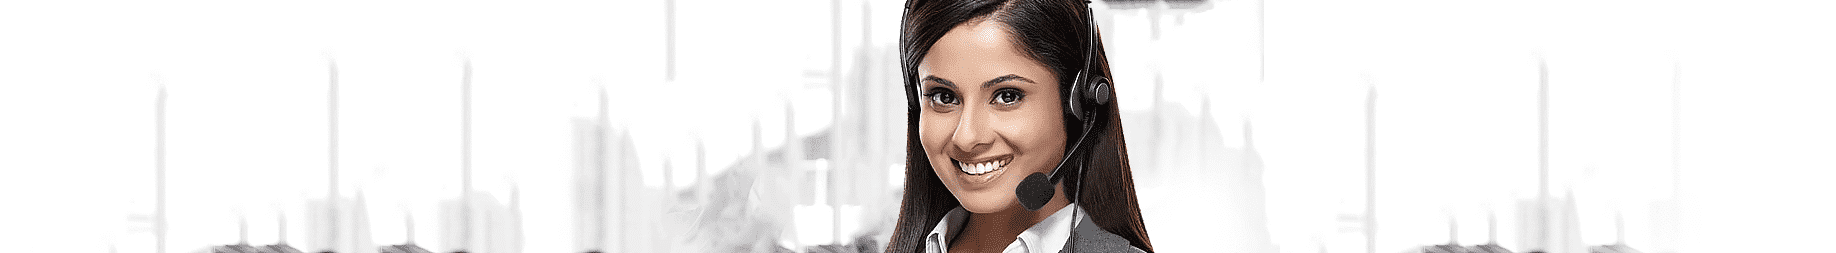 Indian Technical Support | Onshore Call Center | India Call Centers | India Tech Support | Best Applications | Call Centers India | Back Office Support | Inexpensive Call Centers | Call Center Applications | Offshore Call Centers | Offshore Outsourcing | International Call Center Agencies | Indian Call Centers | Call Centers in India | Outsourcing to India | Contact Centers in India